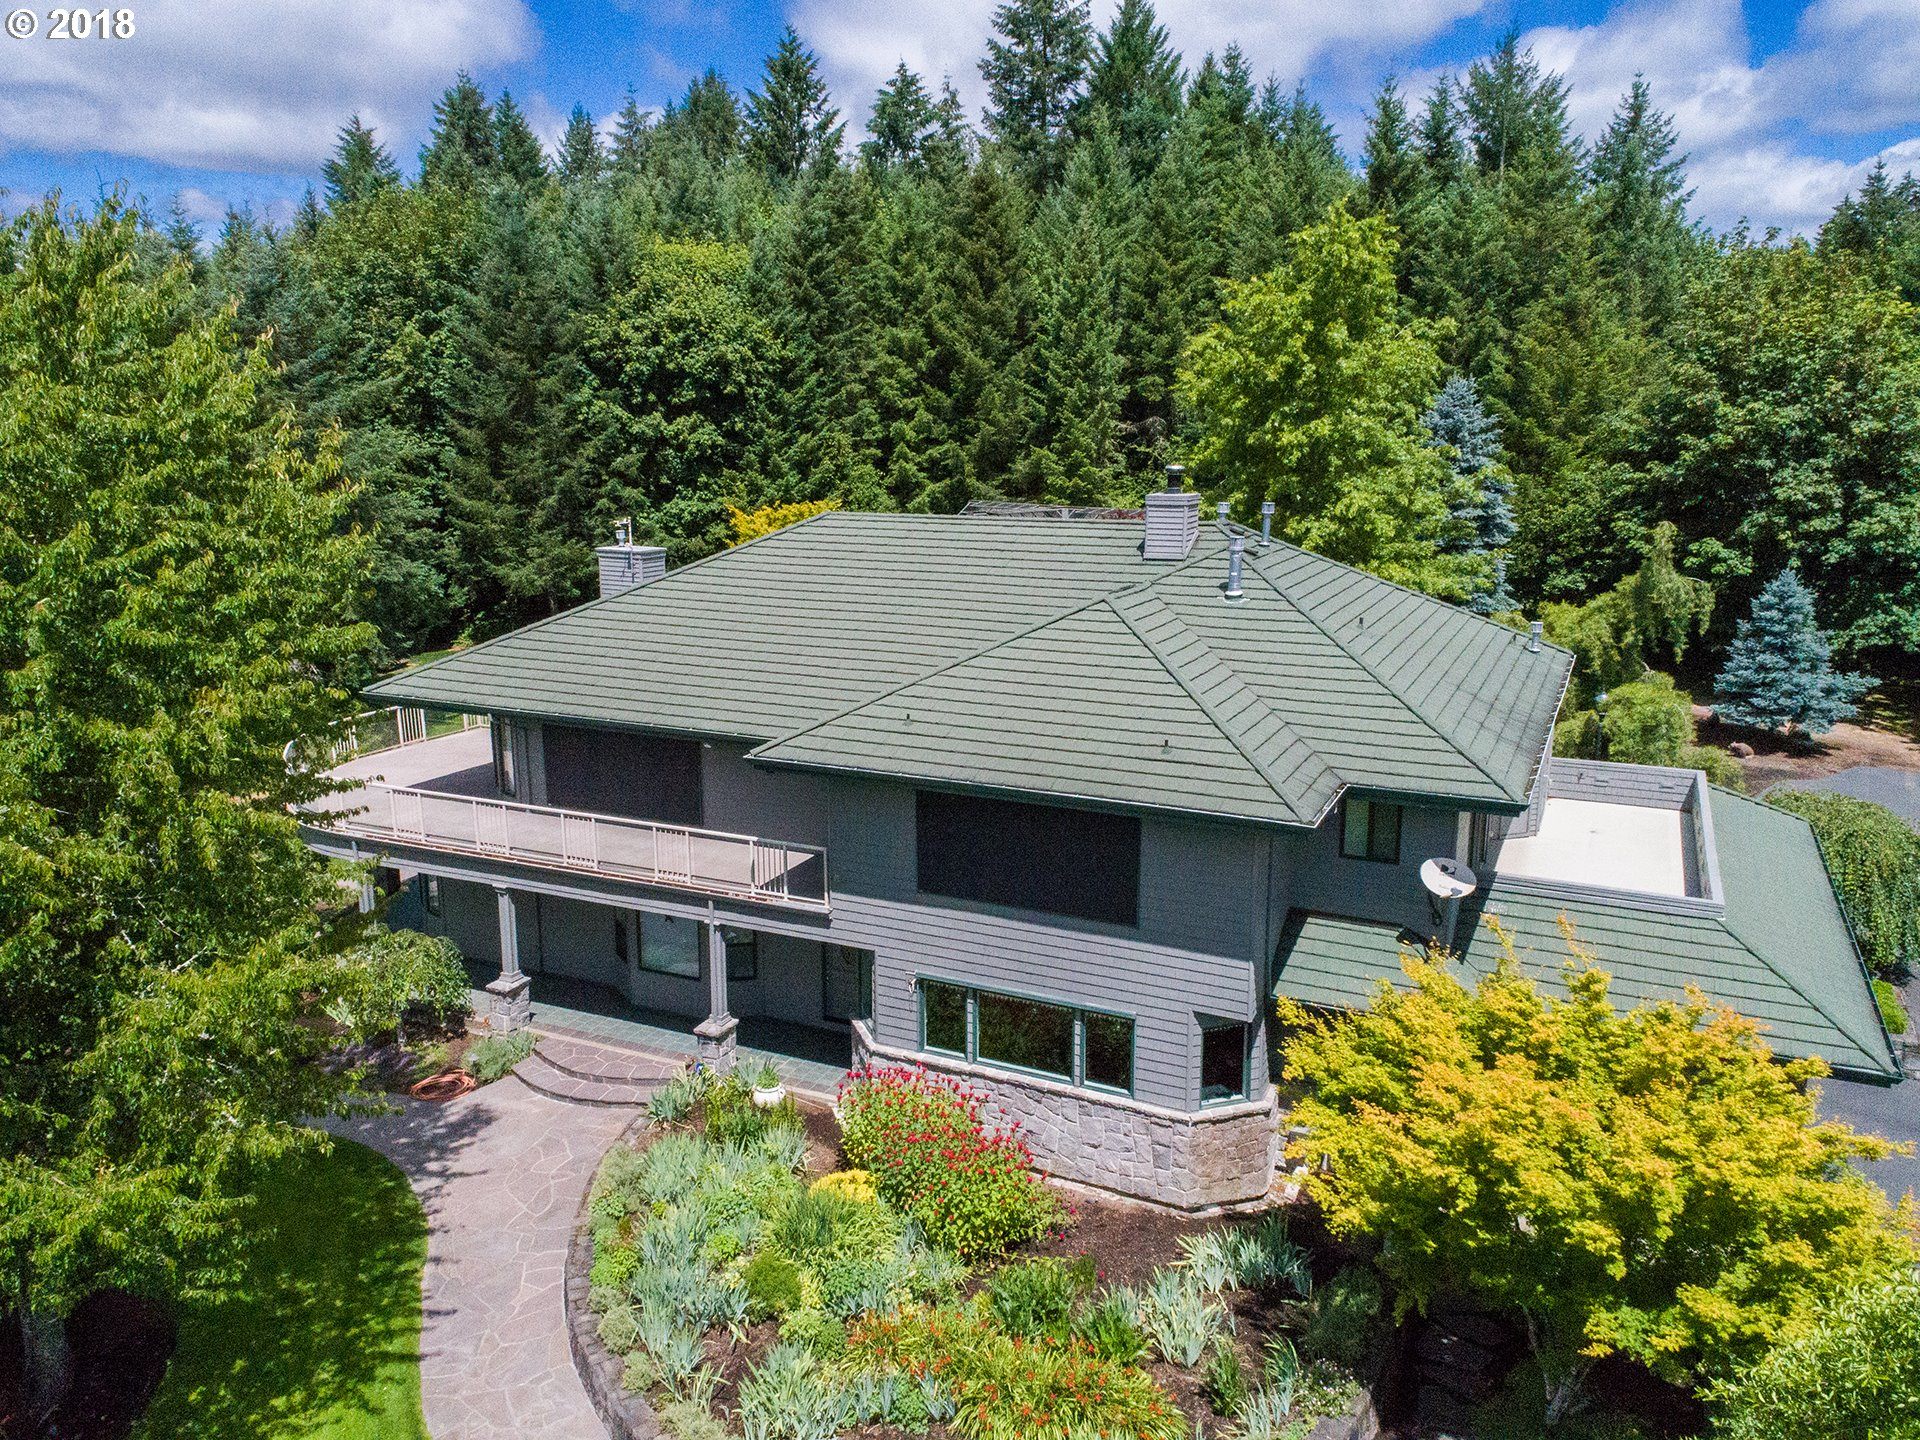 Built in 1997 and recently remodeled, this sprawling and private, 34+ acre property has it all. Master on the main with luxurious bath and flowing, open floor plan. 6,000+ square feet of gracious living space. Enjoy 2 home offices, 1 with sitting area and enormous wraparound terrace. Seamlessly entertain from luxury kitchen to built-in outdoor grill on expansive stone patio. The wandering grounds include hot tub area and greenhouse.